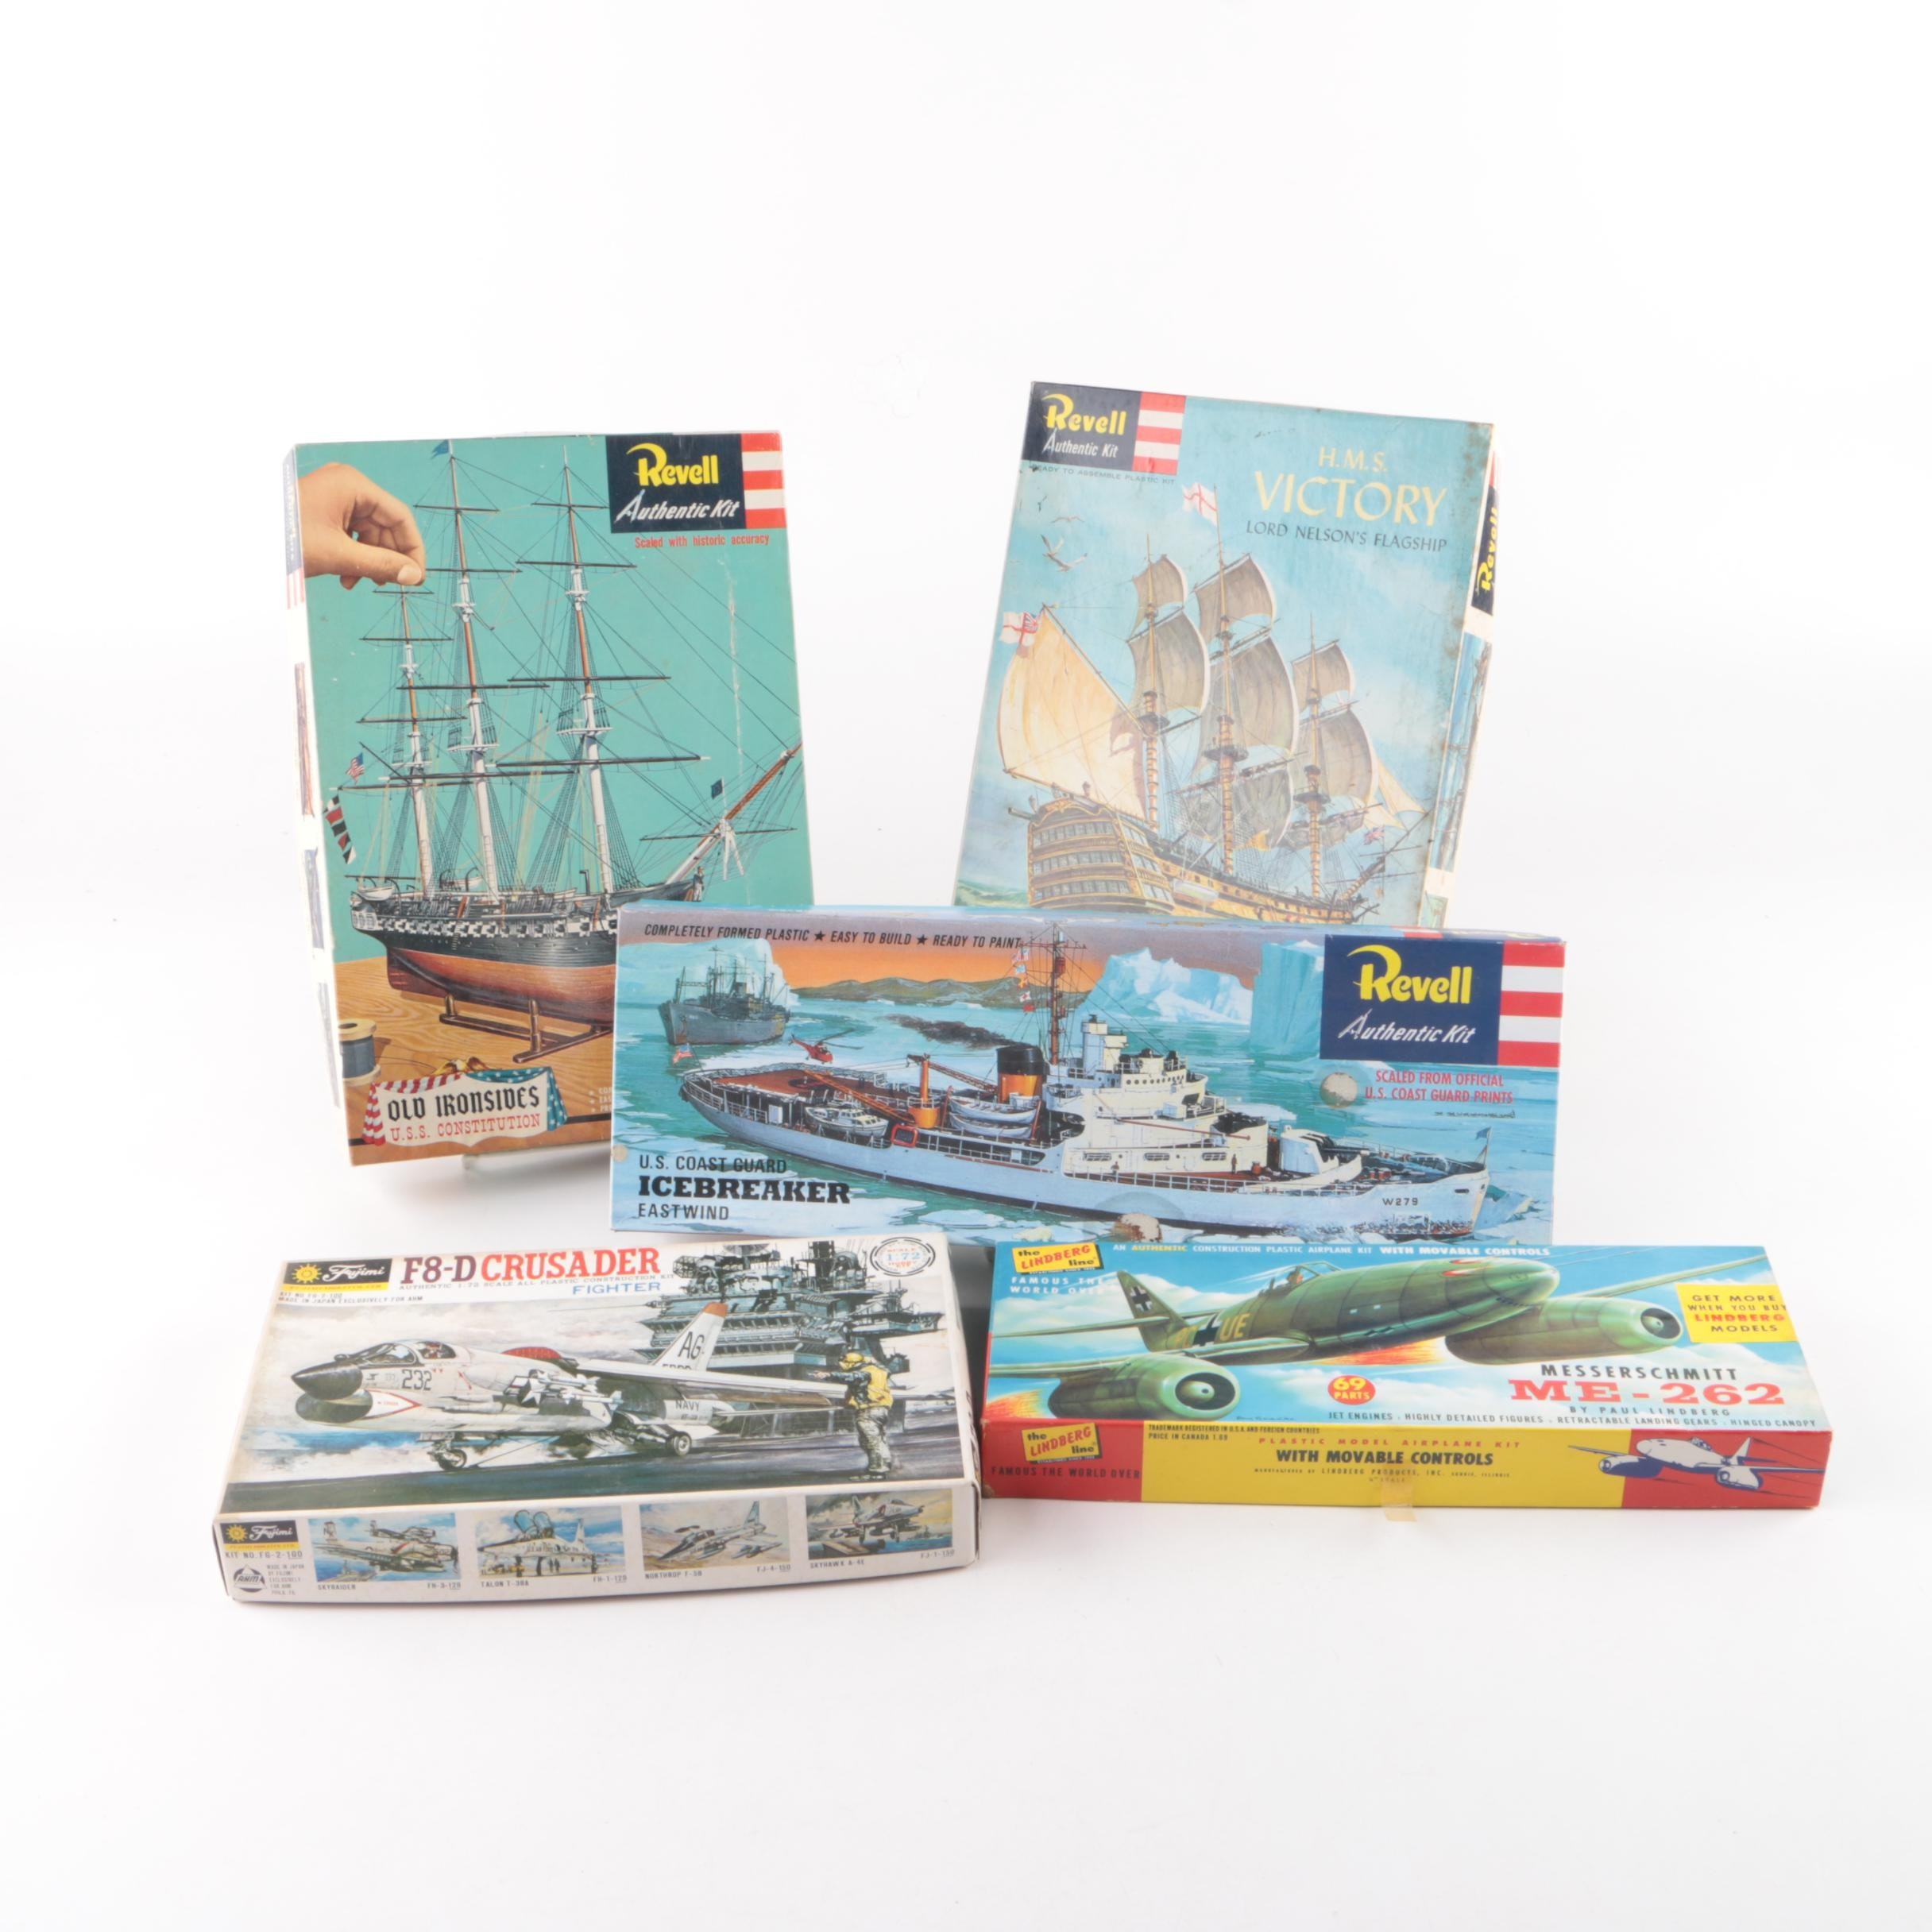 Model Ships and Military Aircraft Kits Including Revell